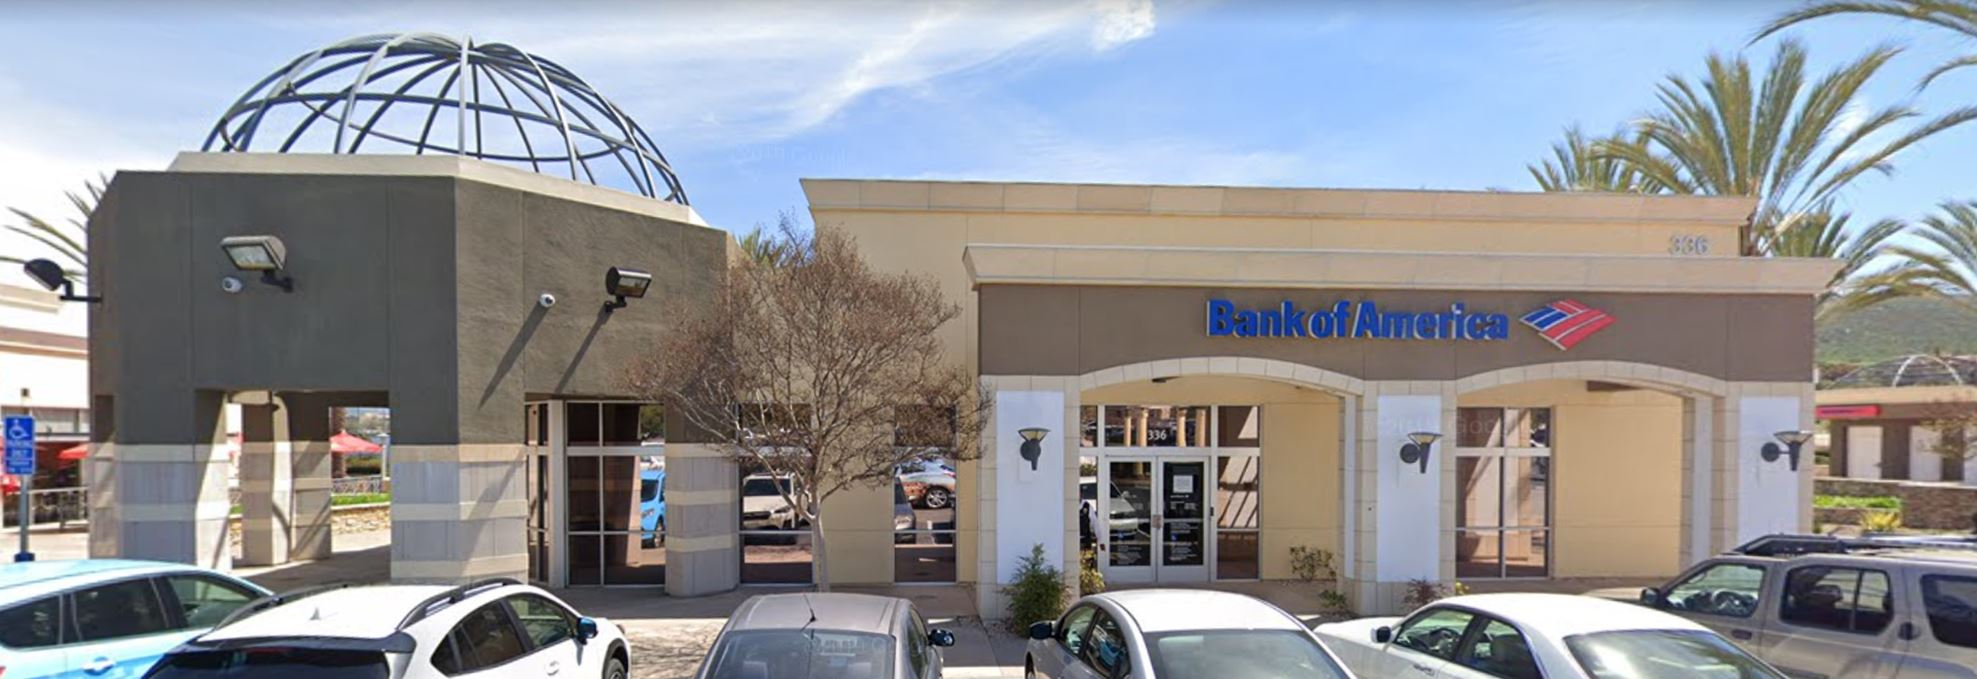 Bank of America financial center with walk-up ATM   336 S Twin Oaks Valley Rd, San Marcos, CA 92078